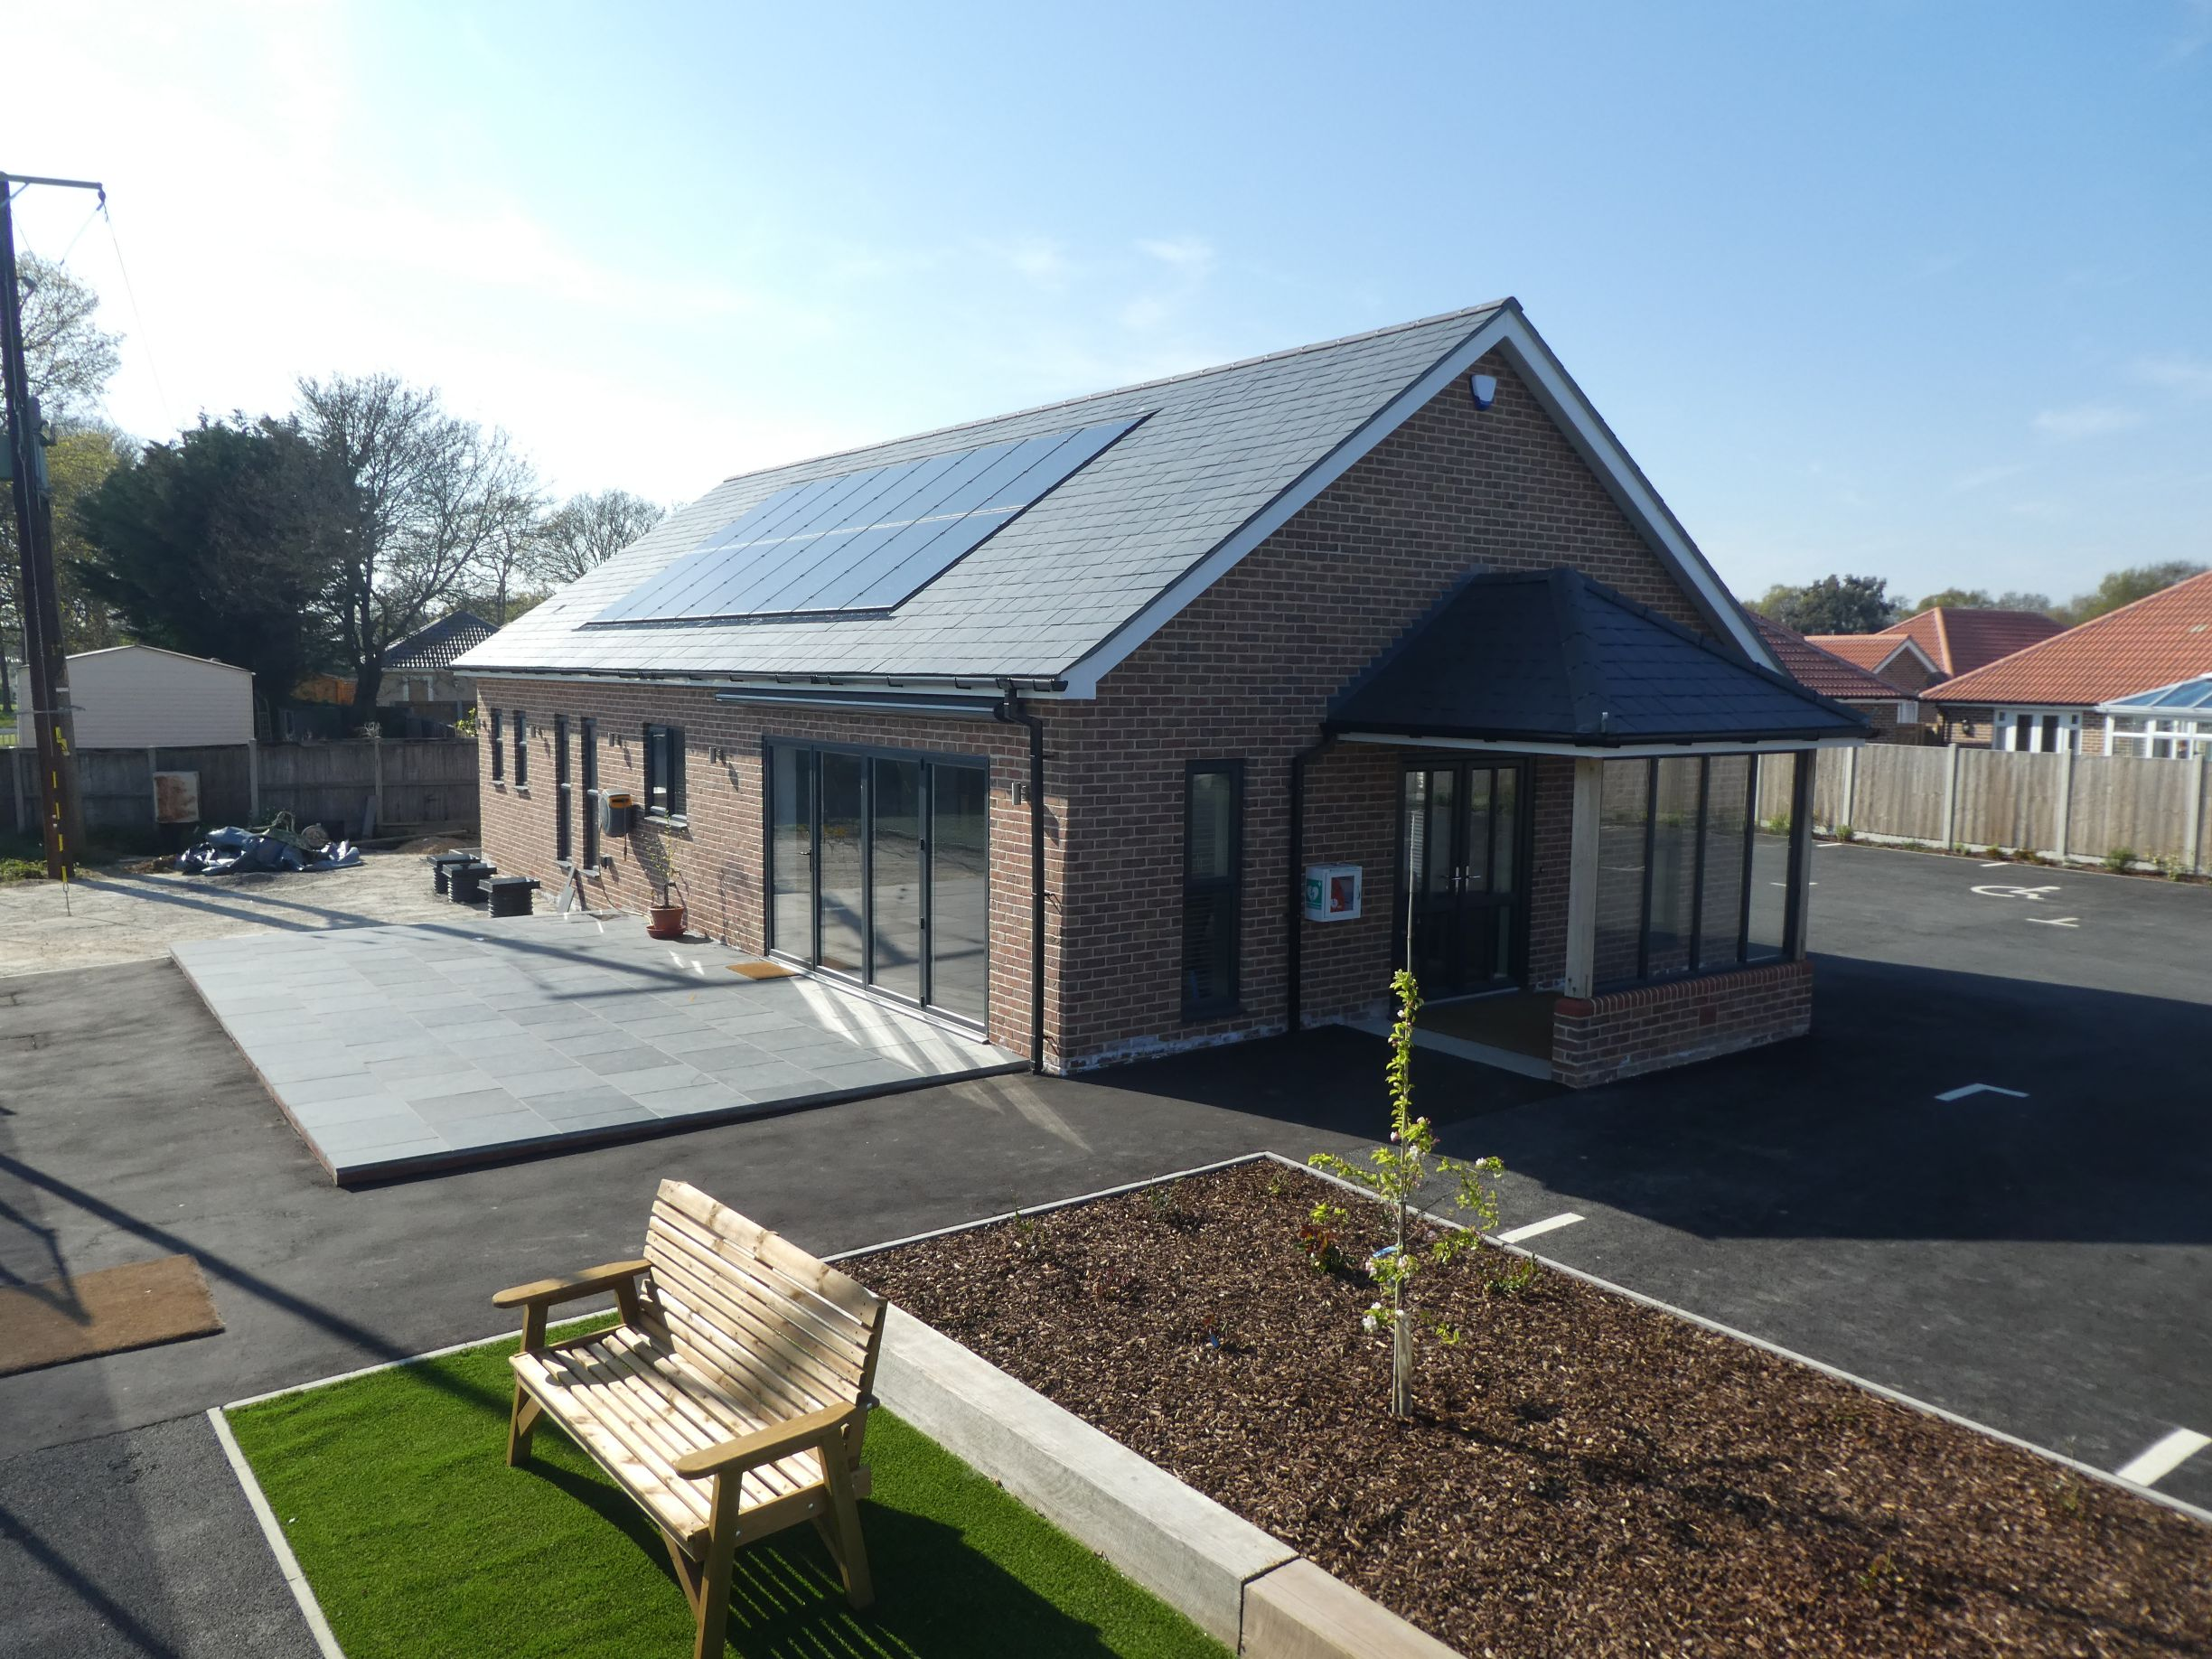 Little Clacton Tennis Club invested £500K in a major upgrade of its tennis court surfaces, clubhouse and facilities